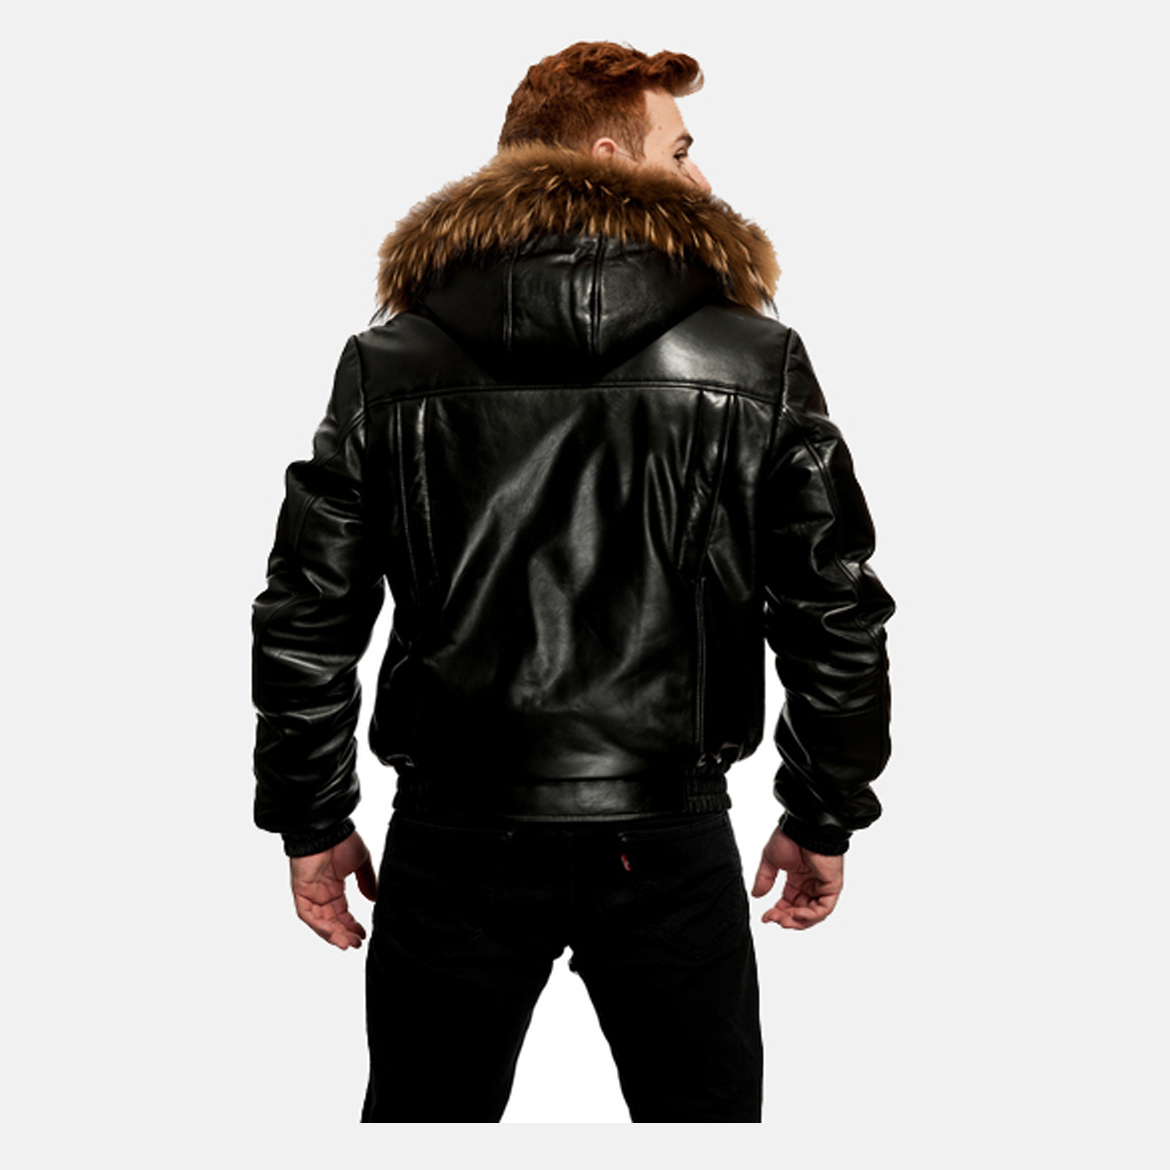 ORIGINAL GOOSE DOWN BOMBER BUTTER SOFT LEATHER JACKET W RACCOON ...